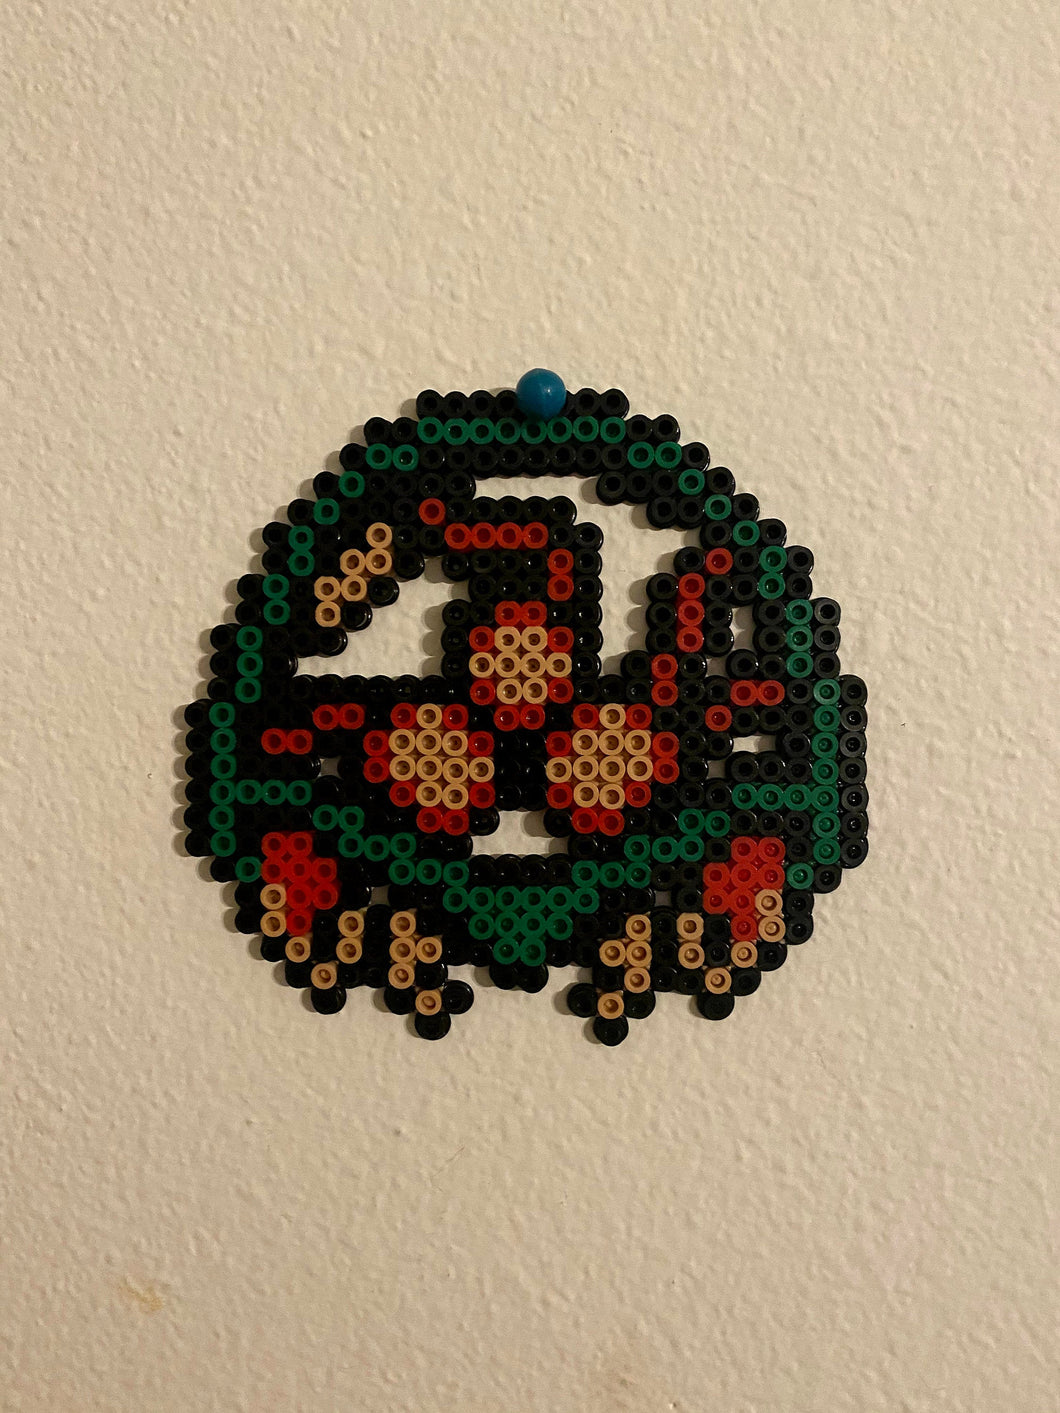 Metroid Inspired Beaded Sprites- Wall Hangings, Kids Bedroom, Game Bedroom and More